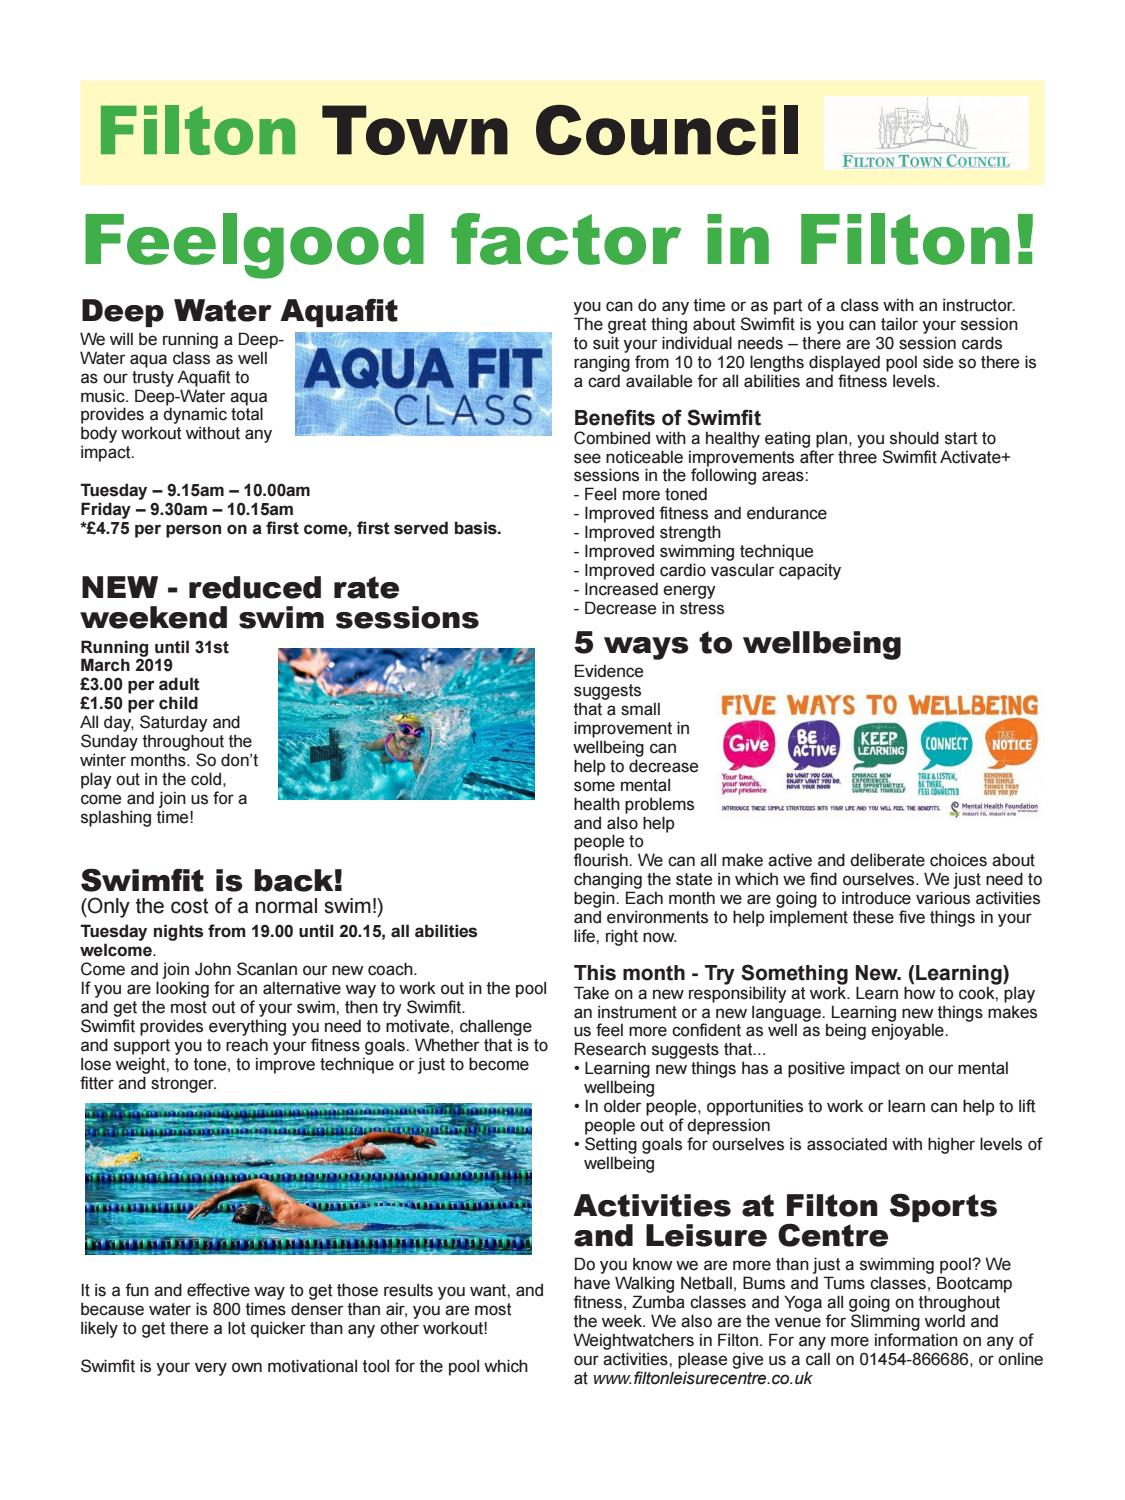 Filtonvoice December 2018 by Richard Coulter - issuu